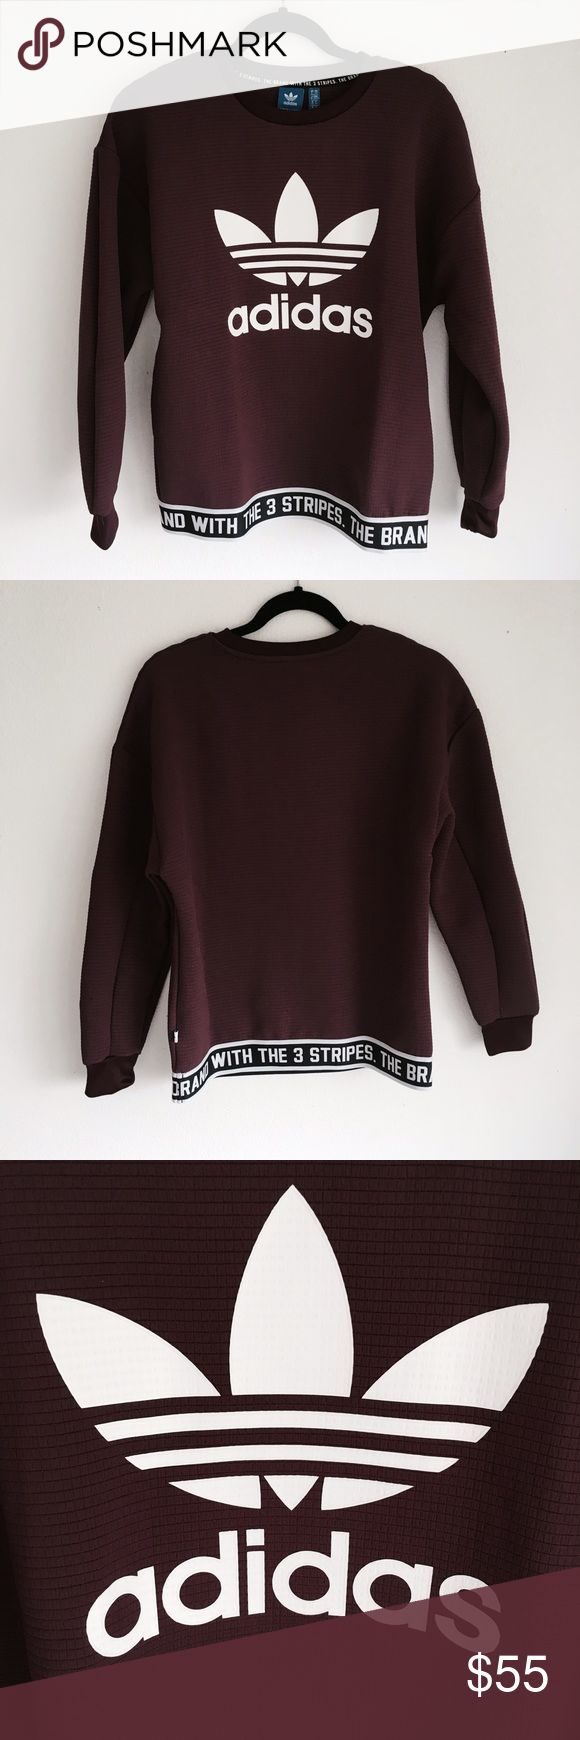 Adidas Trefoil Maroon Sweater Adidas Trefoil Maroon Sweater. Size xsmall. New with tags, no flaws. Adidas Sweaters